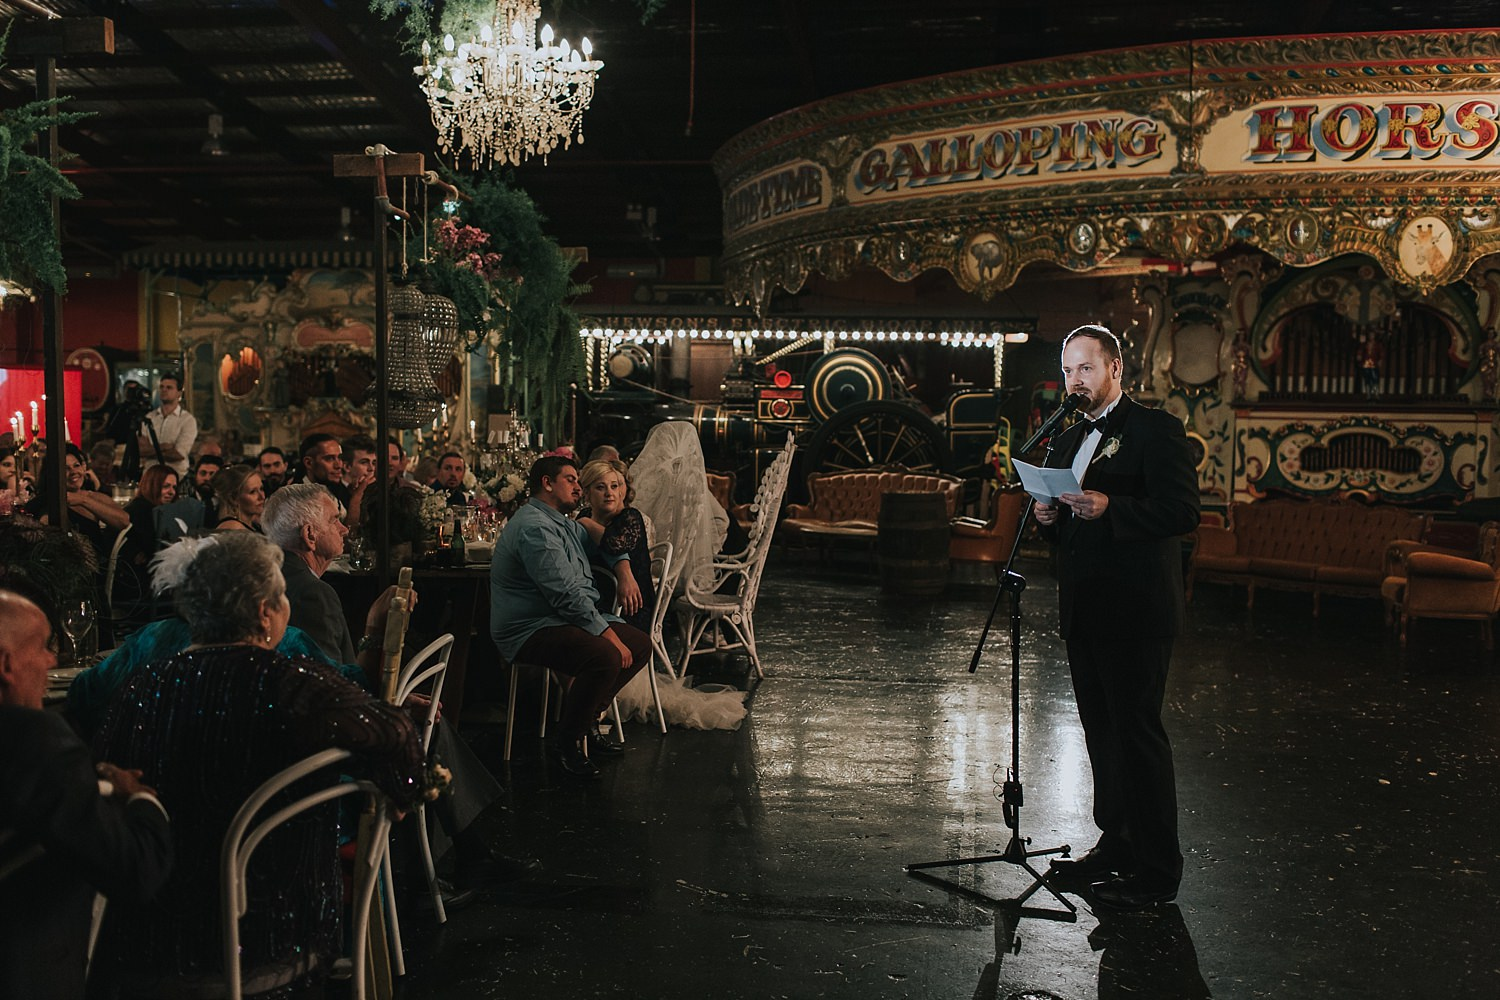 groom speech at fairground follies